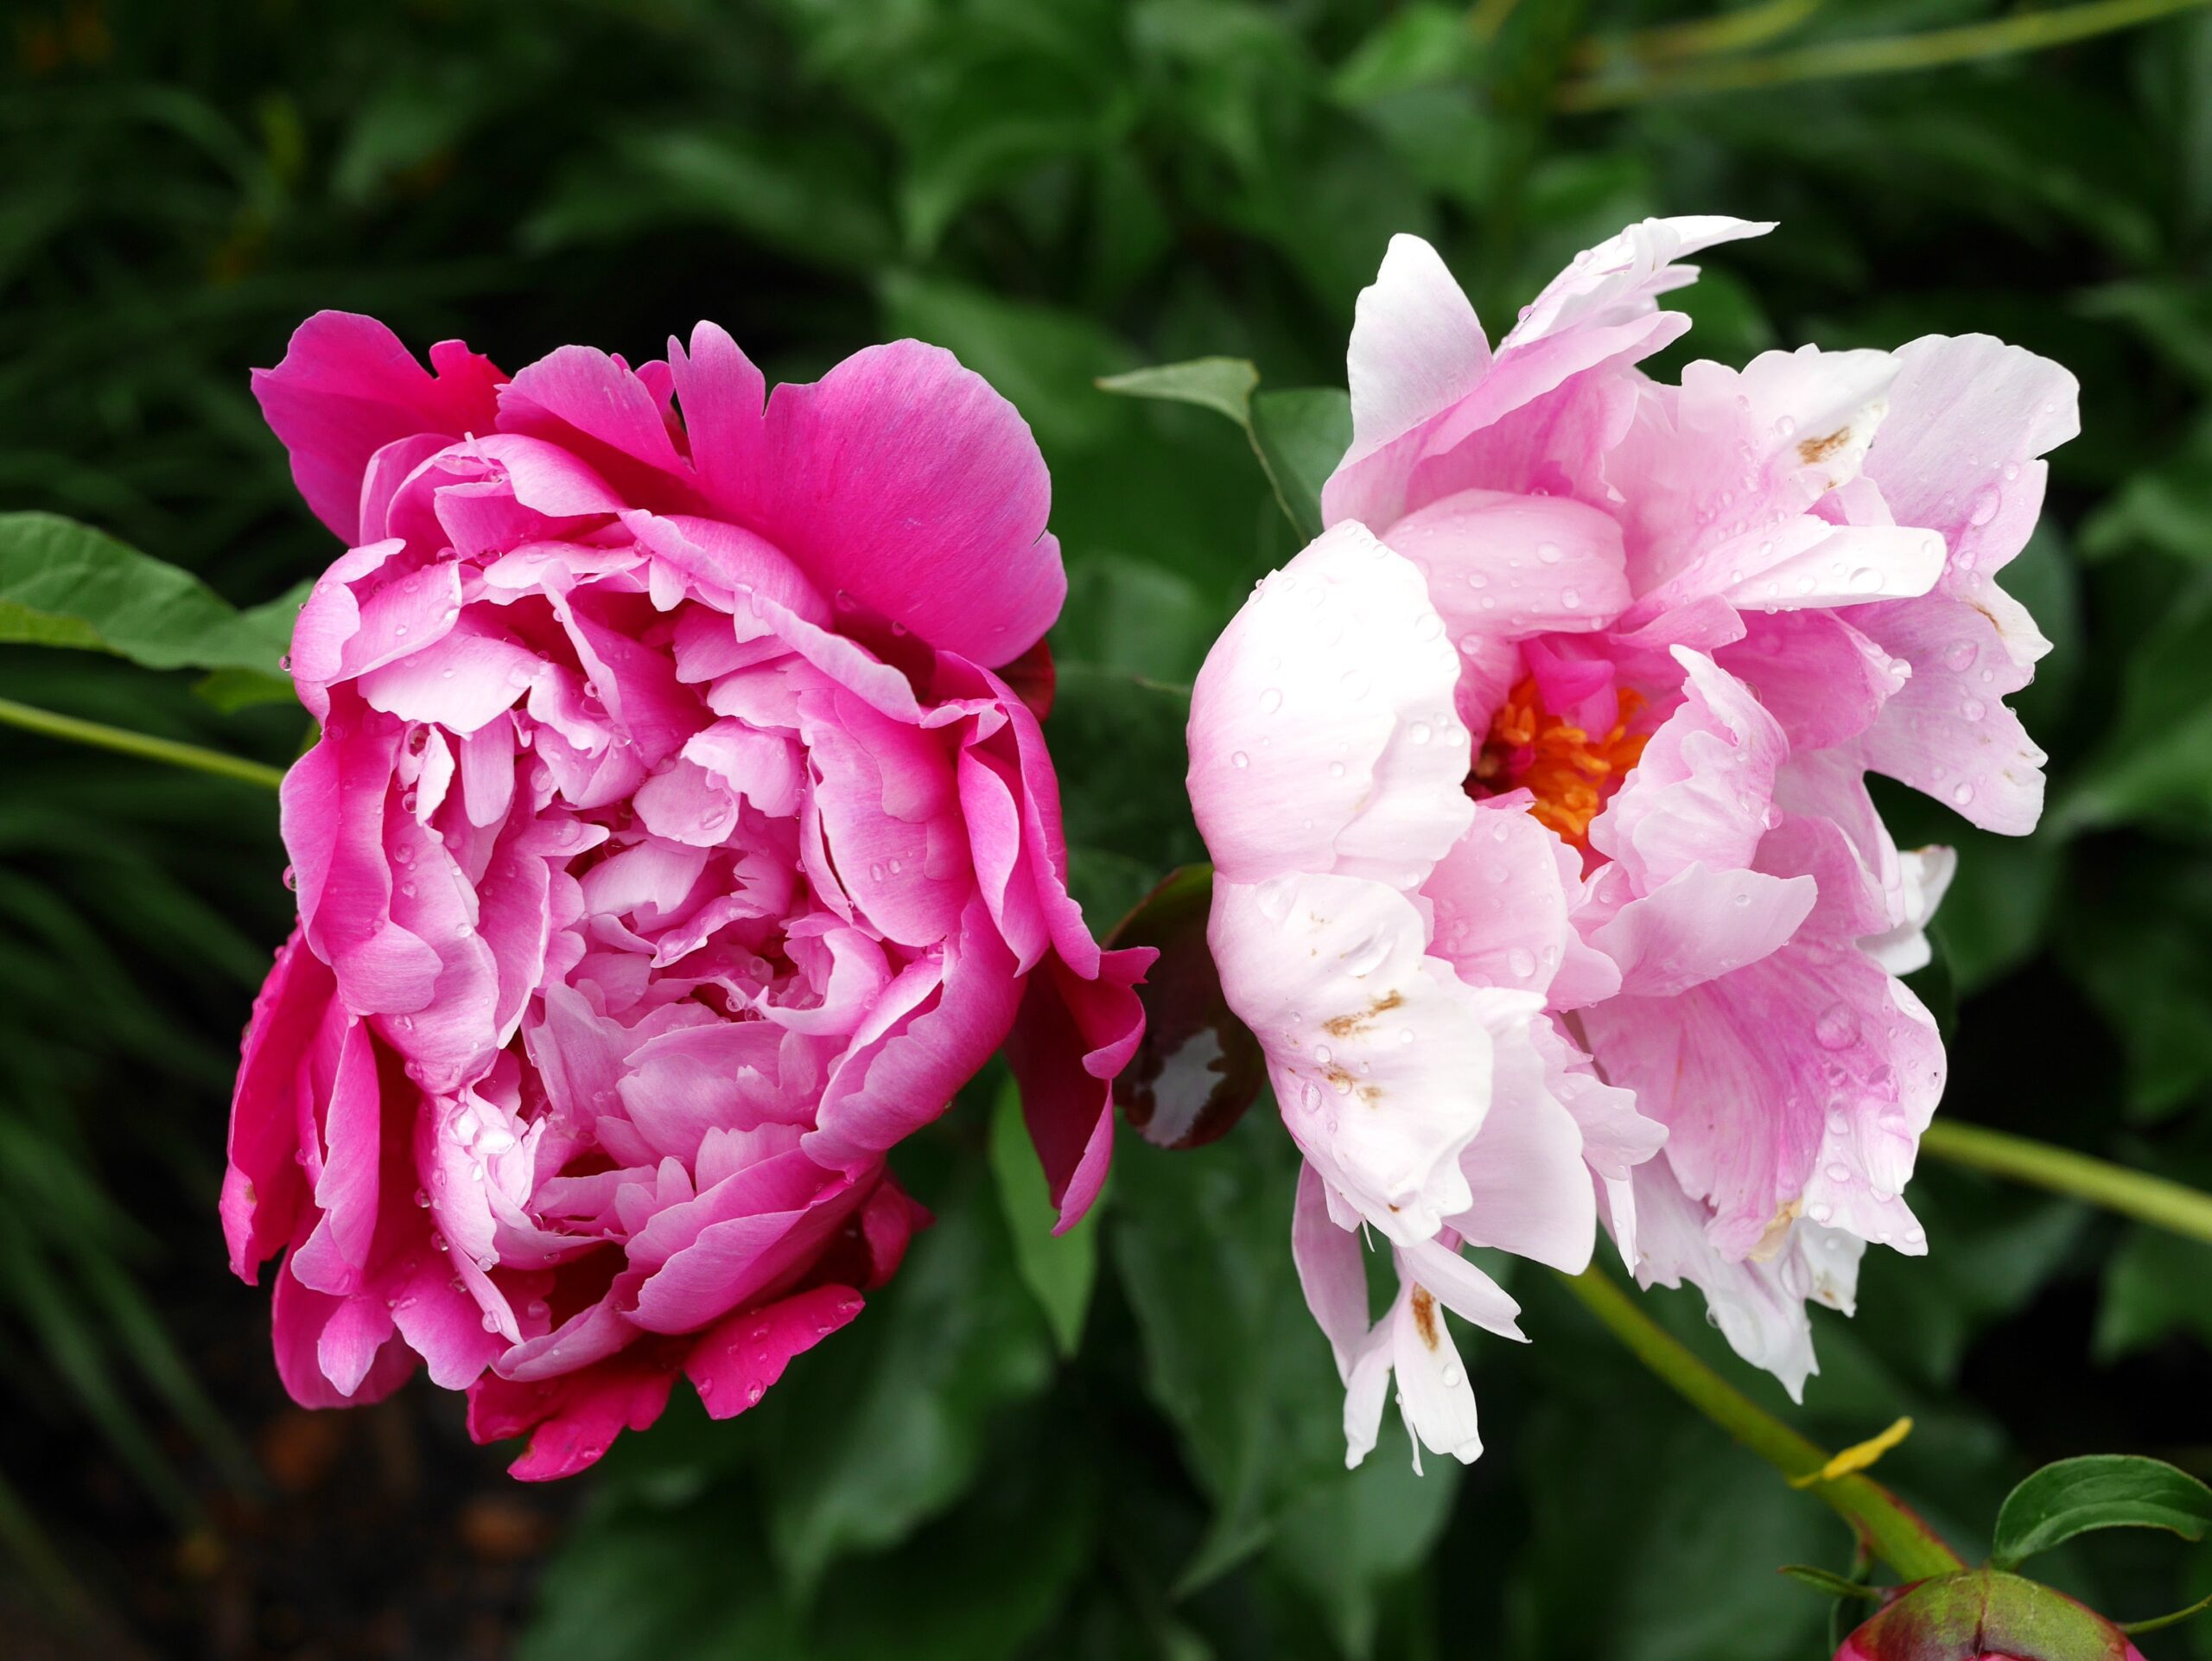 Pink peonies flowers with green leaves in a garden